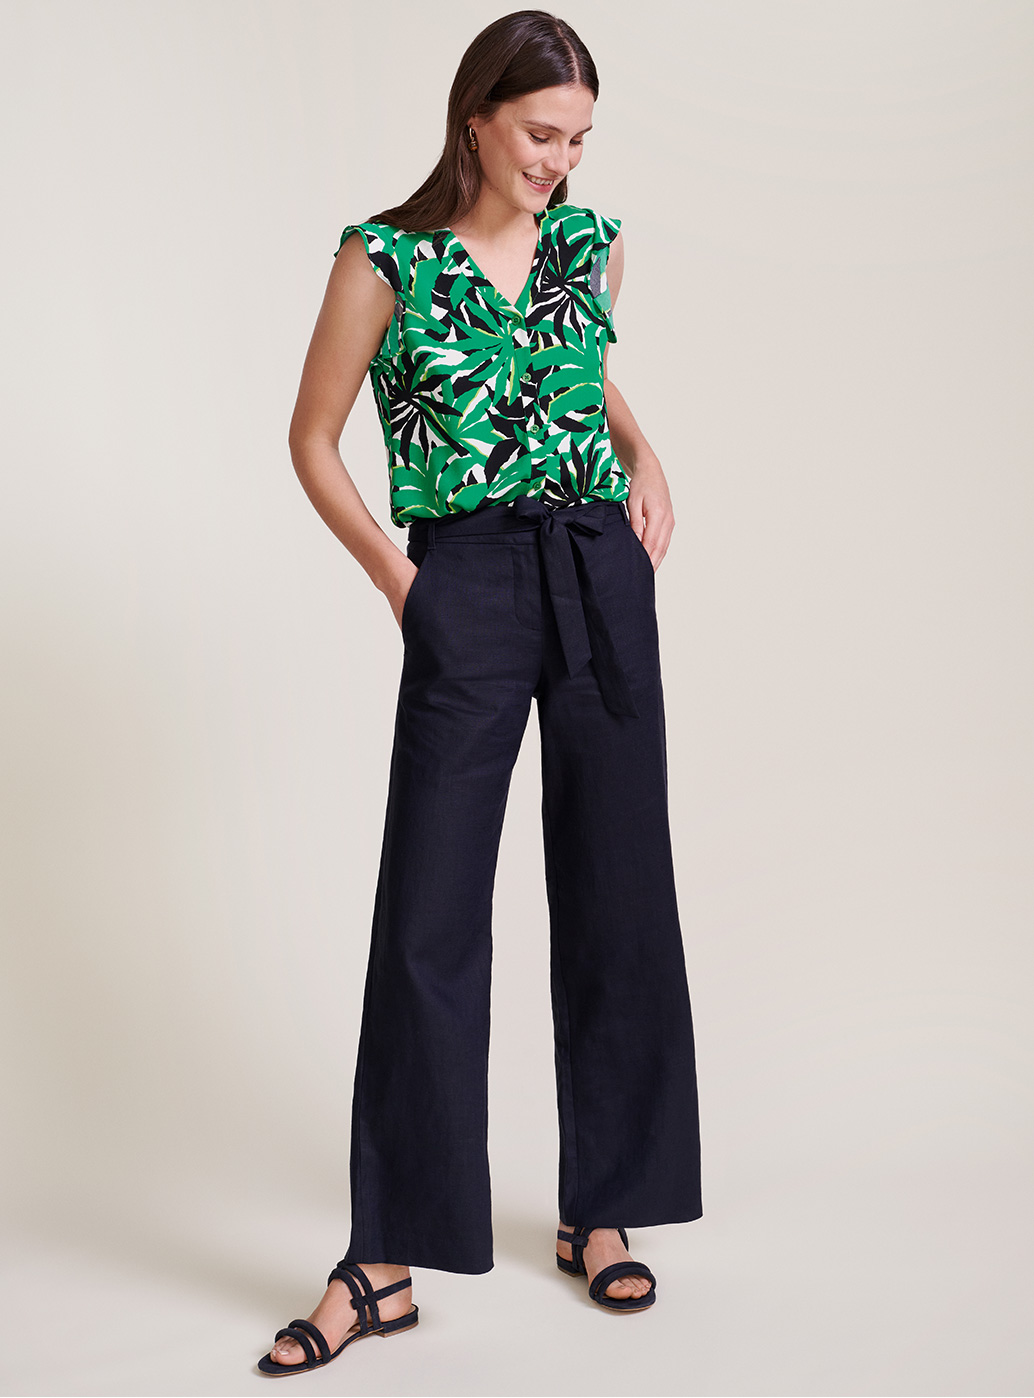 Model wears a jungle print blouse, tucked into wide leg linen trousers.